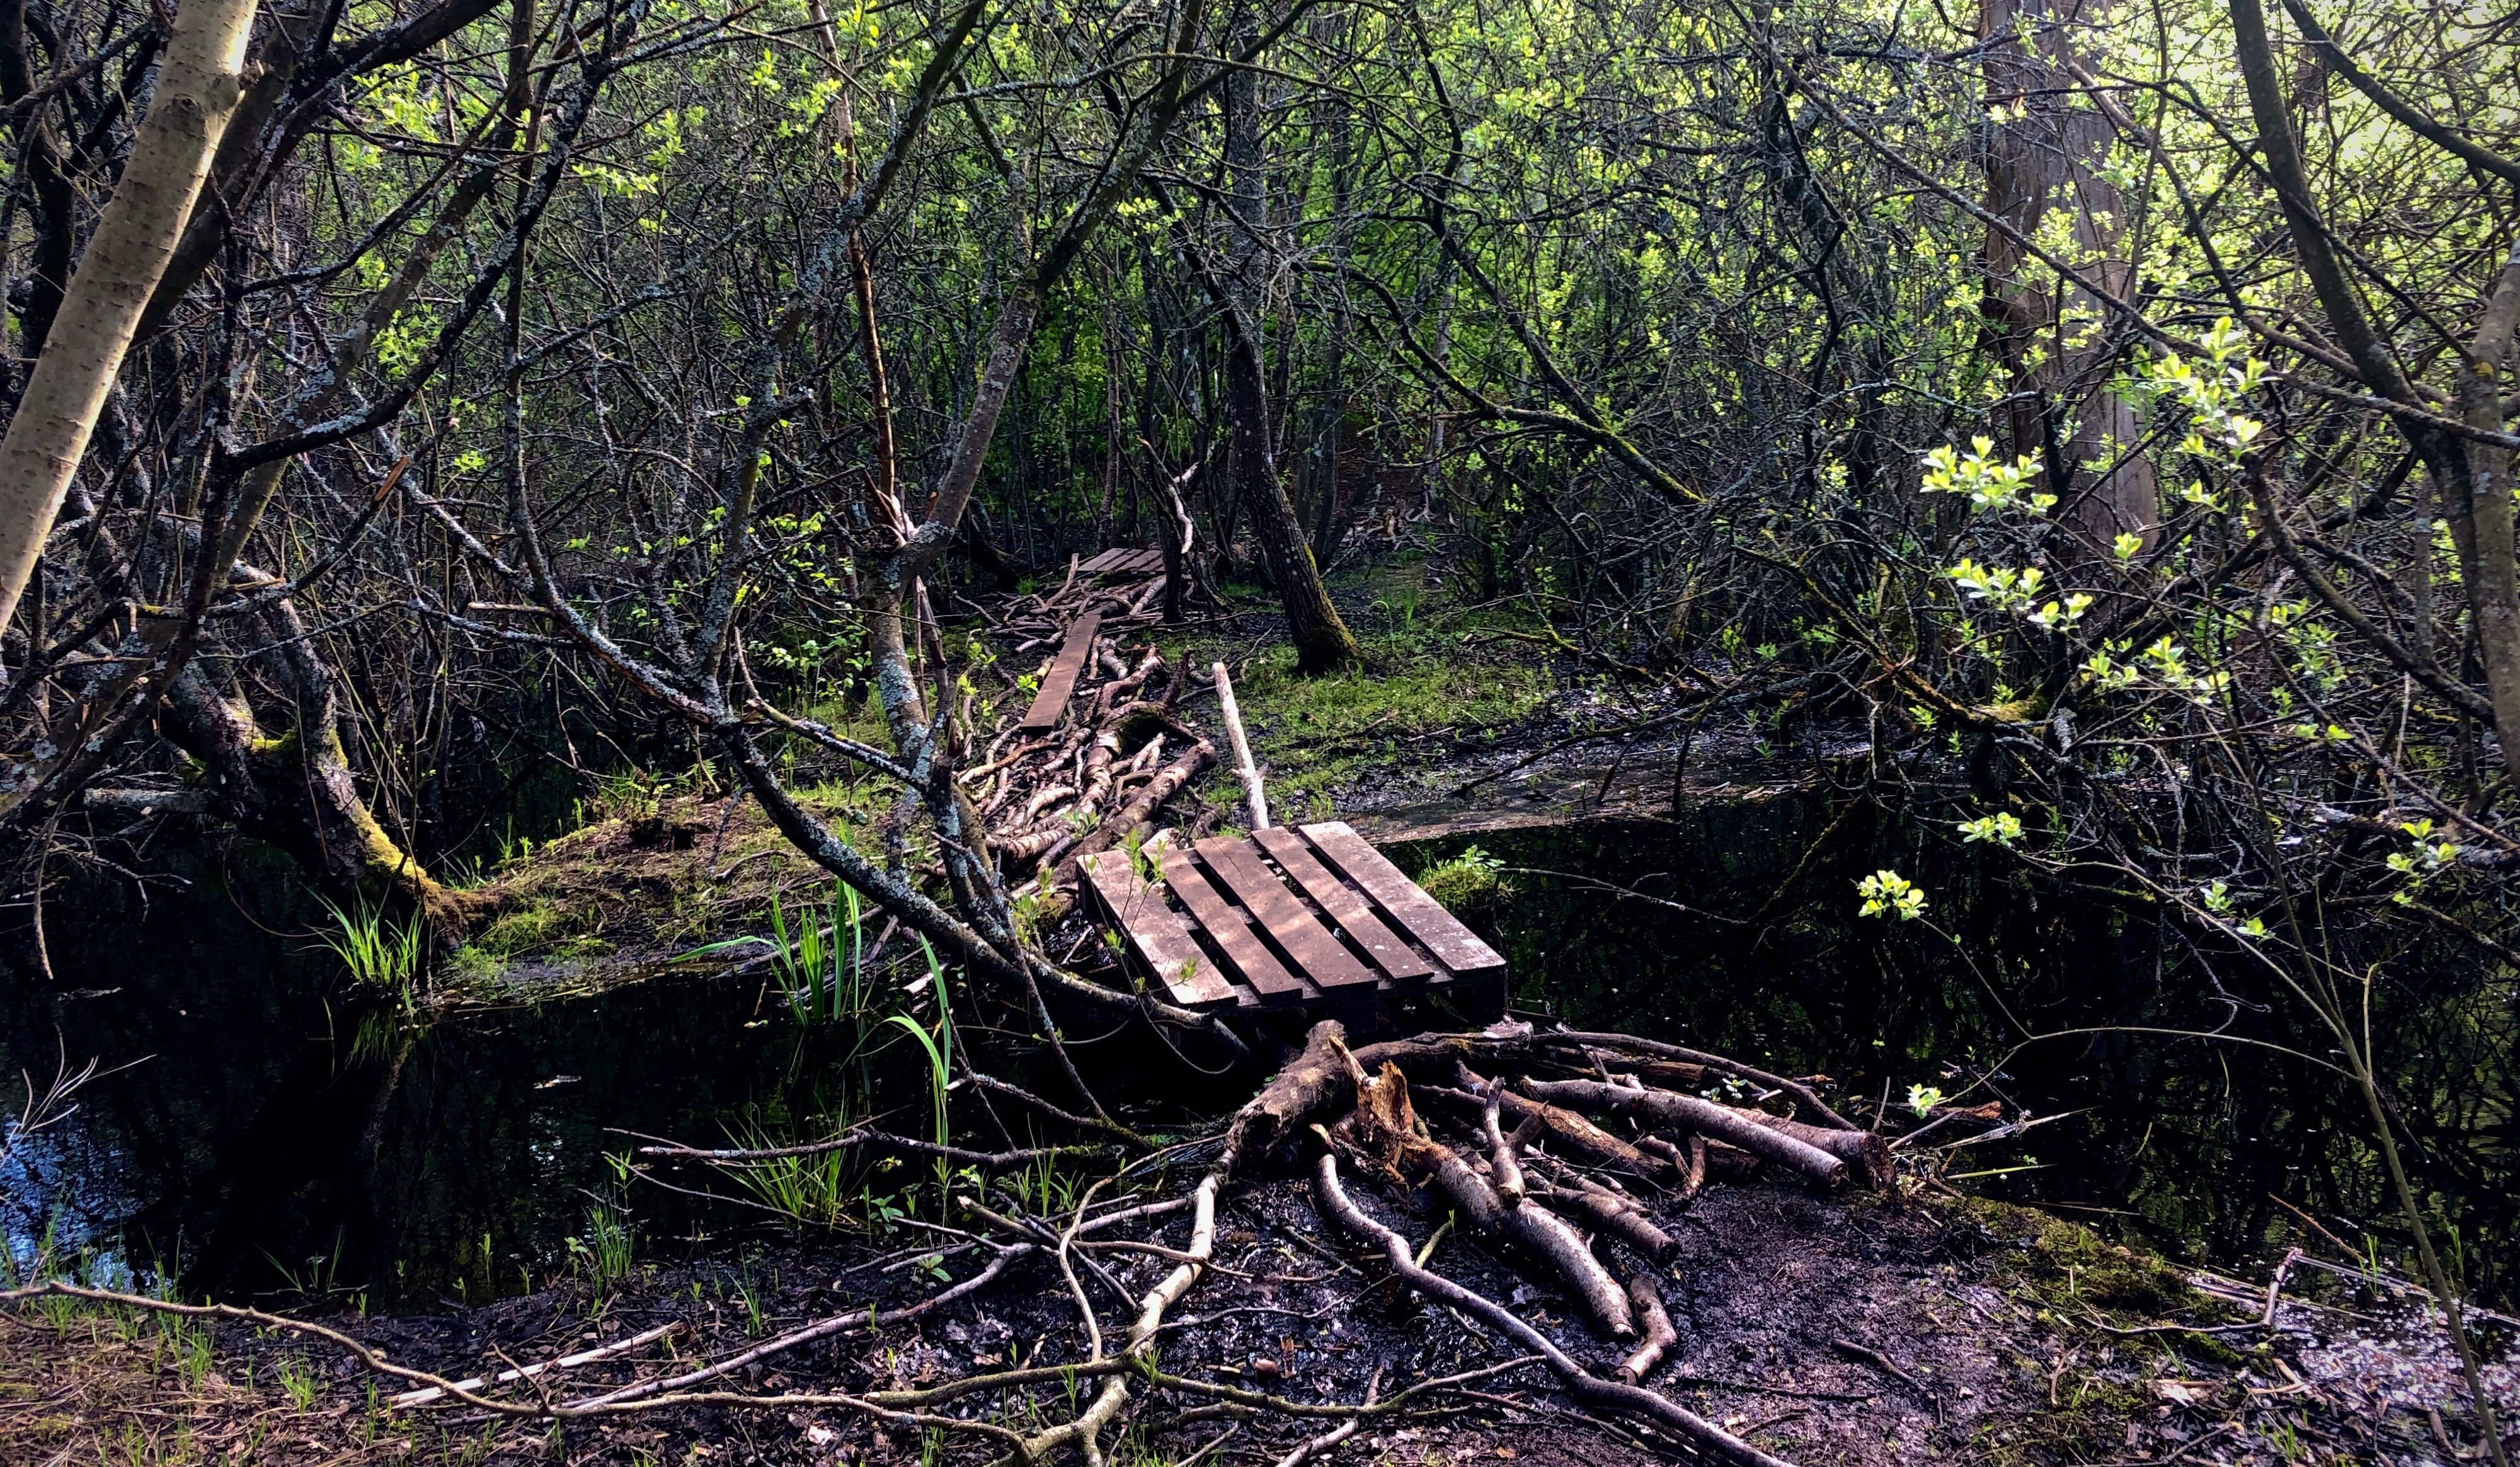 Bridge in a forest over a tiny river. The bridge is build from stacked branches and looks unsafe.